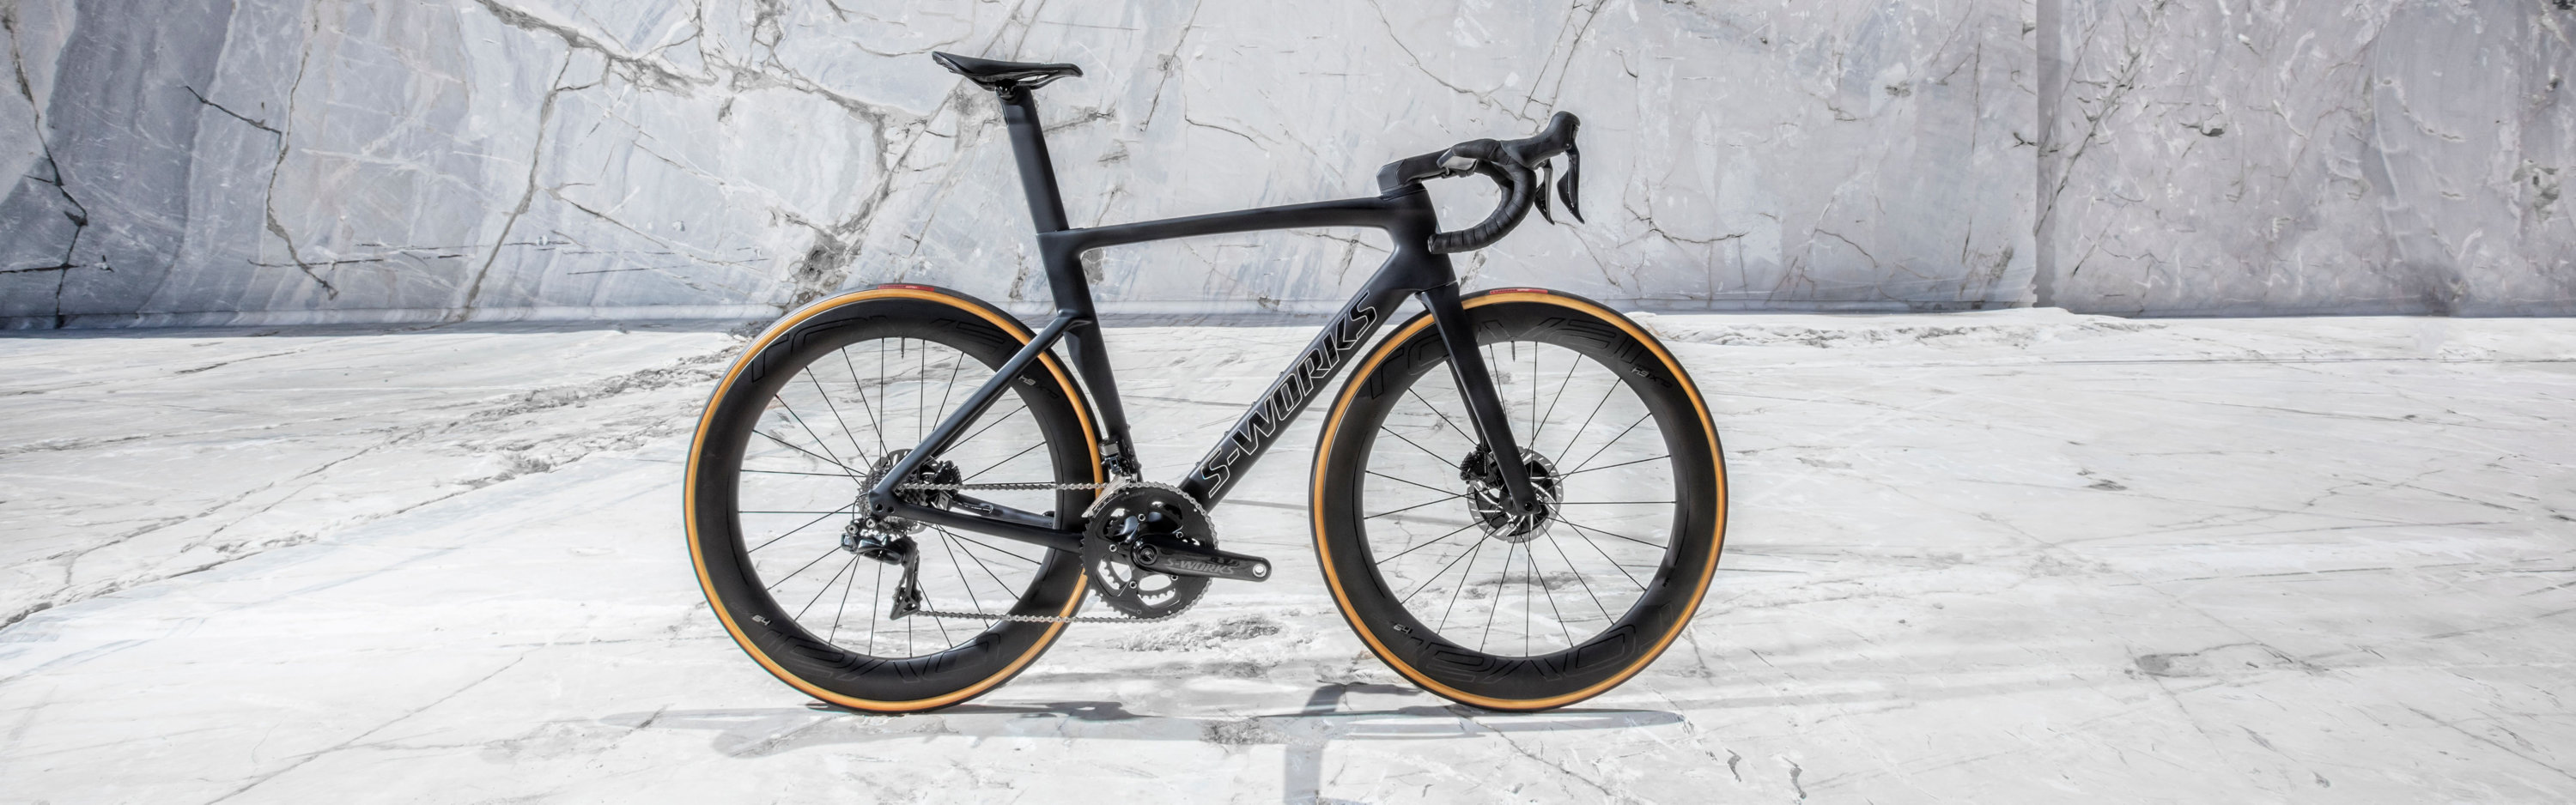 4eaa7b3b0cd Venge | Specialized.com